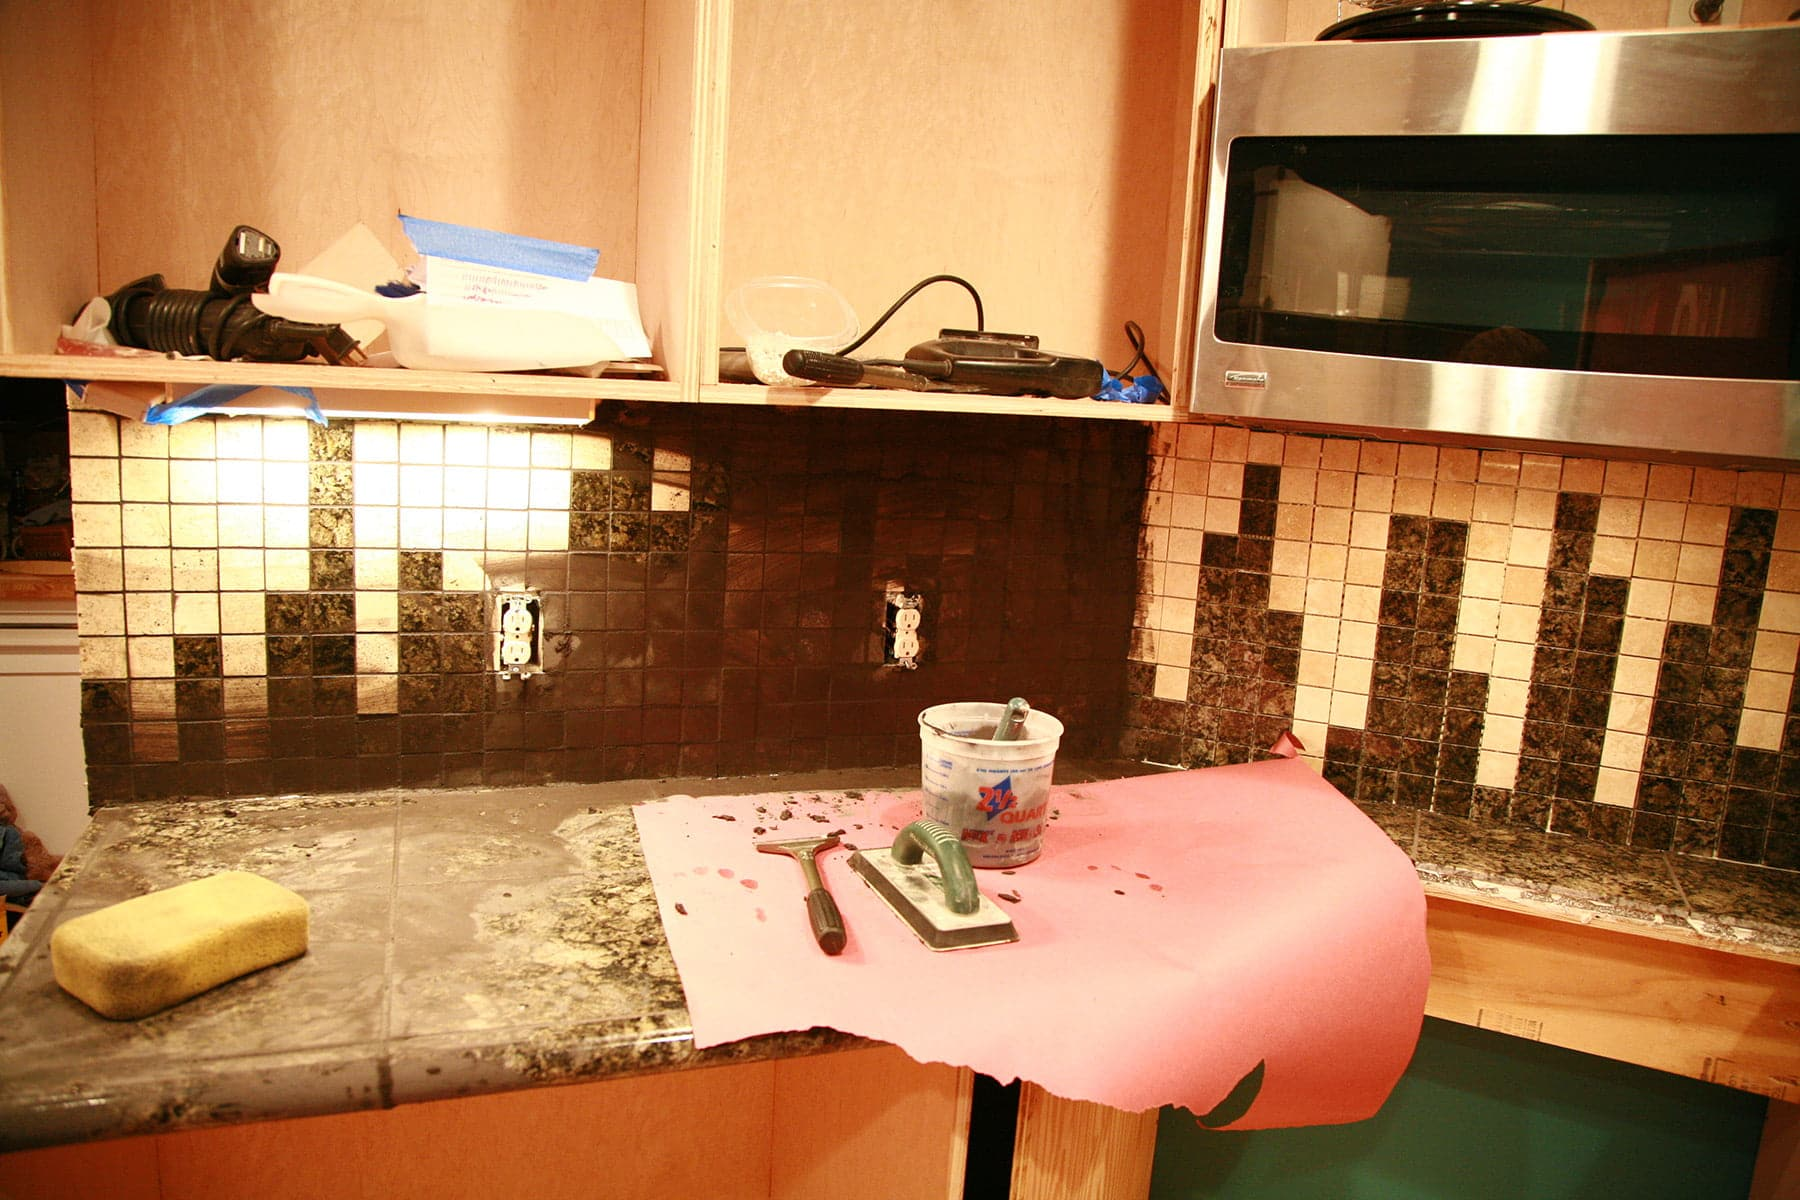 A counter is covered with pink rosin paper, and the back splash has black grout applied over the whole surface. Grout tools are visible in the foreground.